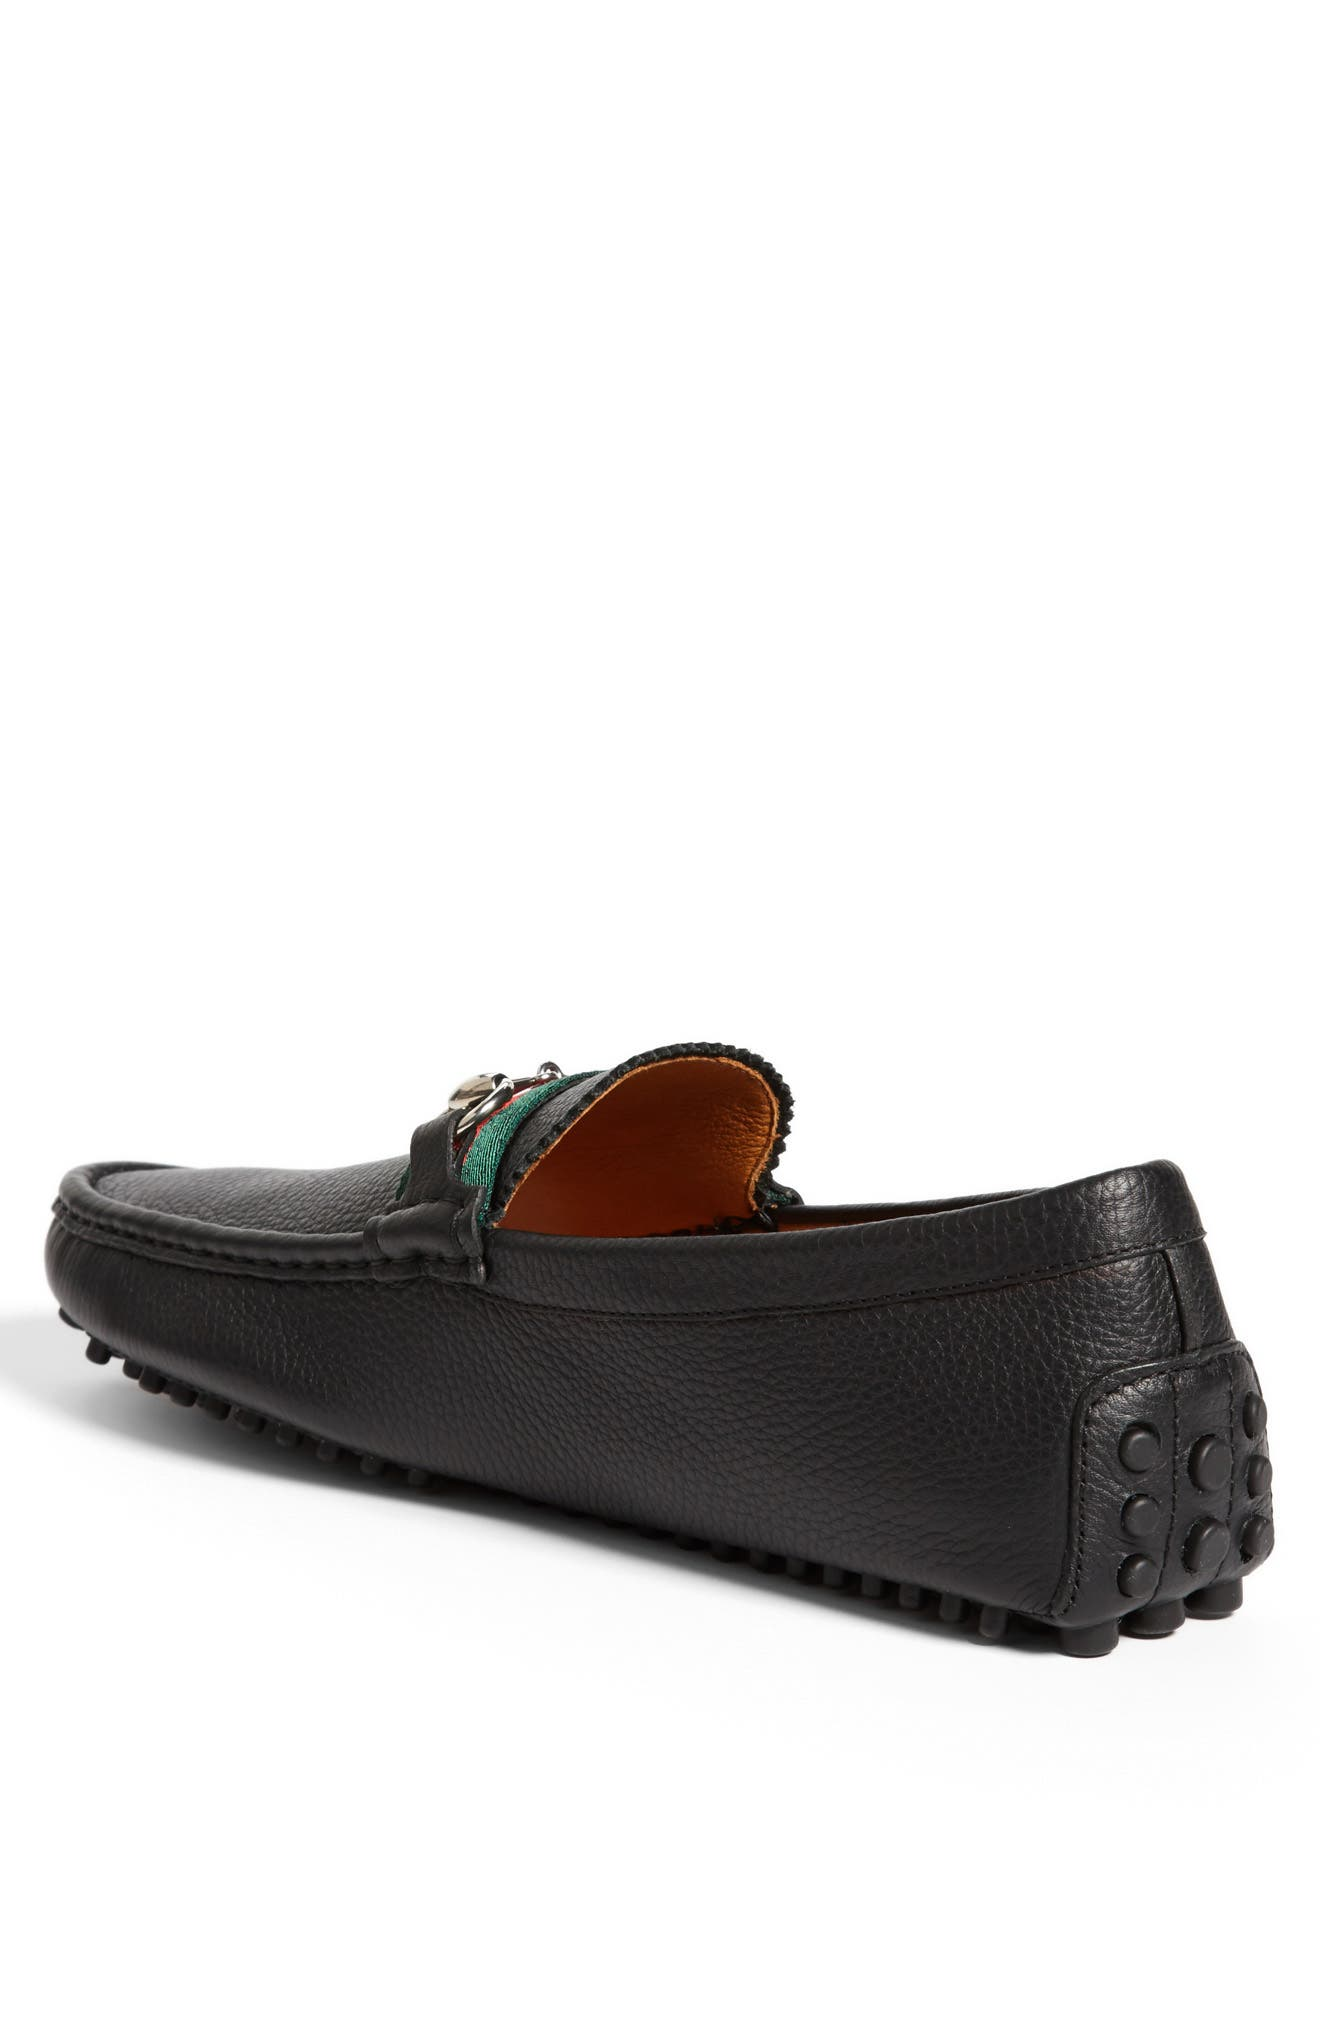 'Damo' Driving Shoe,                             Alternate thumbnail 2, color,                             BLACK